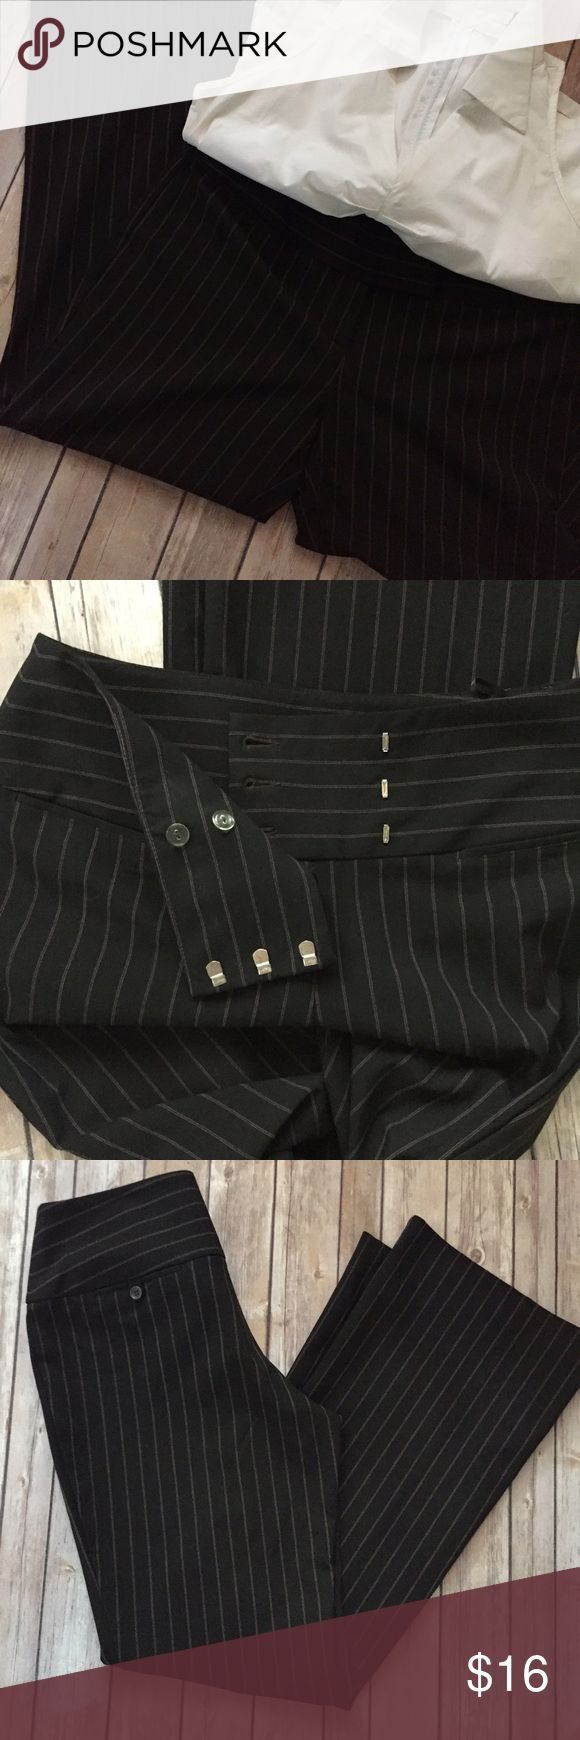 """INC Black and Pink Pinstriped Pants Sz 8 If pinstripes were ever sexy, it was on these pants! A nice heavyweight Poly/Rayon/Spandex blend perfect for Fall🍁 Lightly worn & in great used condition w/ no flaws. They feature an extra wide waistband (shown Pic 2) that really makes these fit amazing. They do flare and look great with heels or boots. Waist 16"""" flat. Rise 10"""". Inseam 33"""". Very well made! Please feel free to ask me any questions or make me an offer. Thanks for checking out my closet…"""